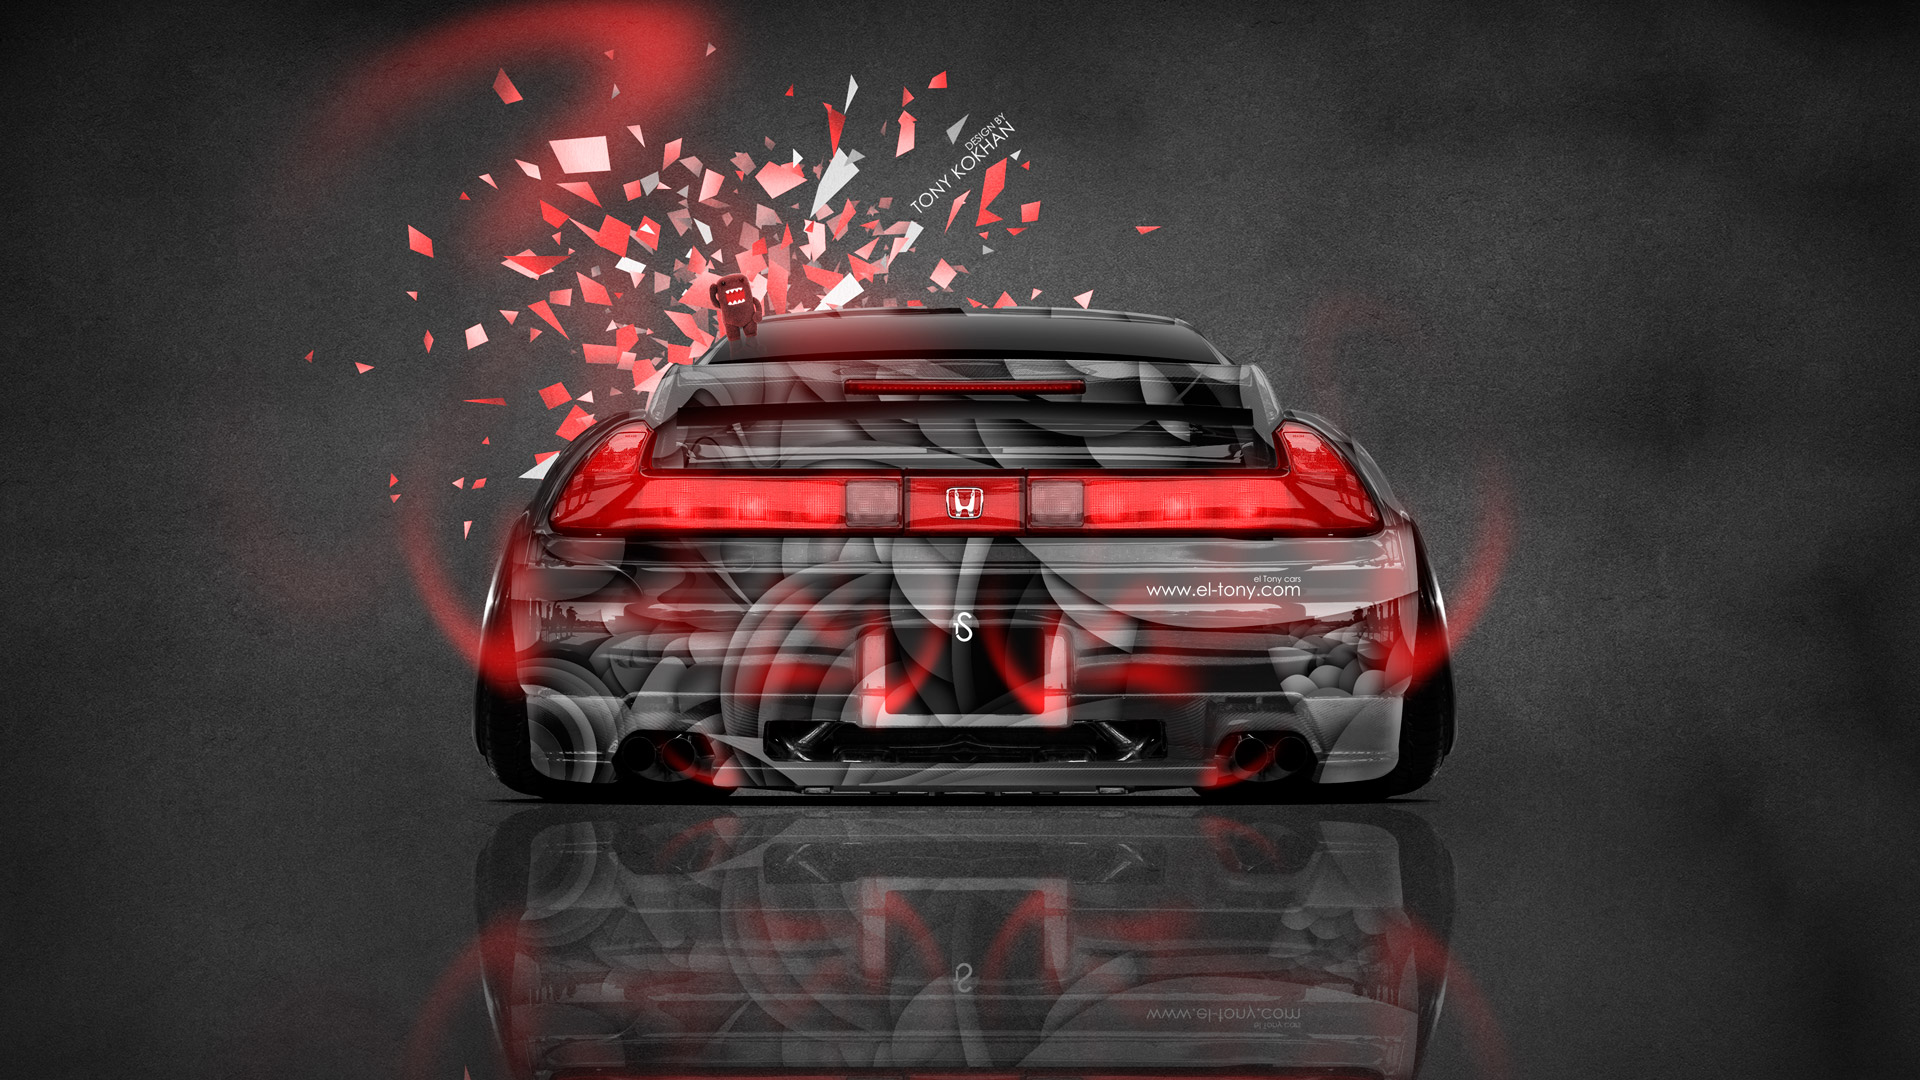 Fire And Water Hd Wallpapers Honda Nsx Back Jdm Style Domo Kun Toy Car 2014 El Tony